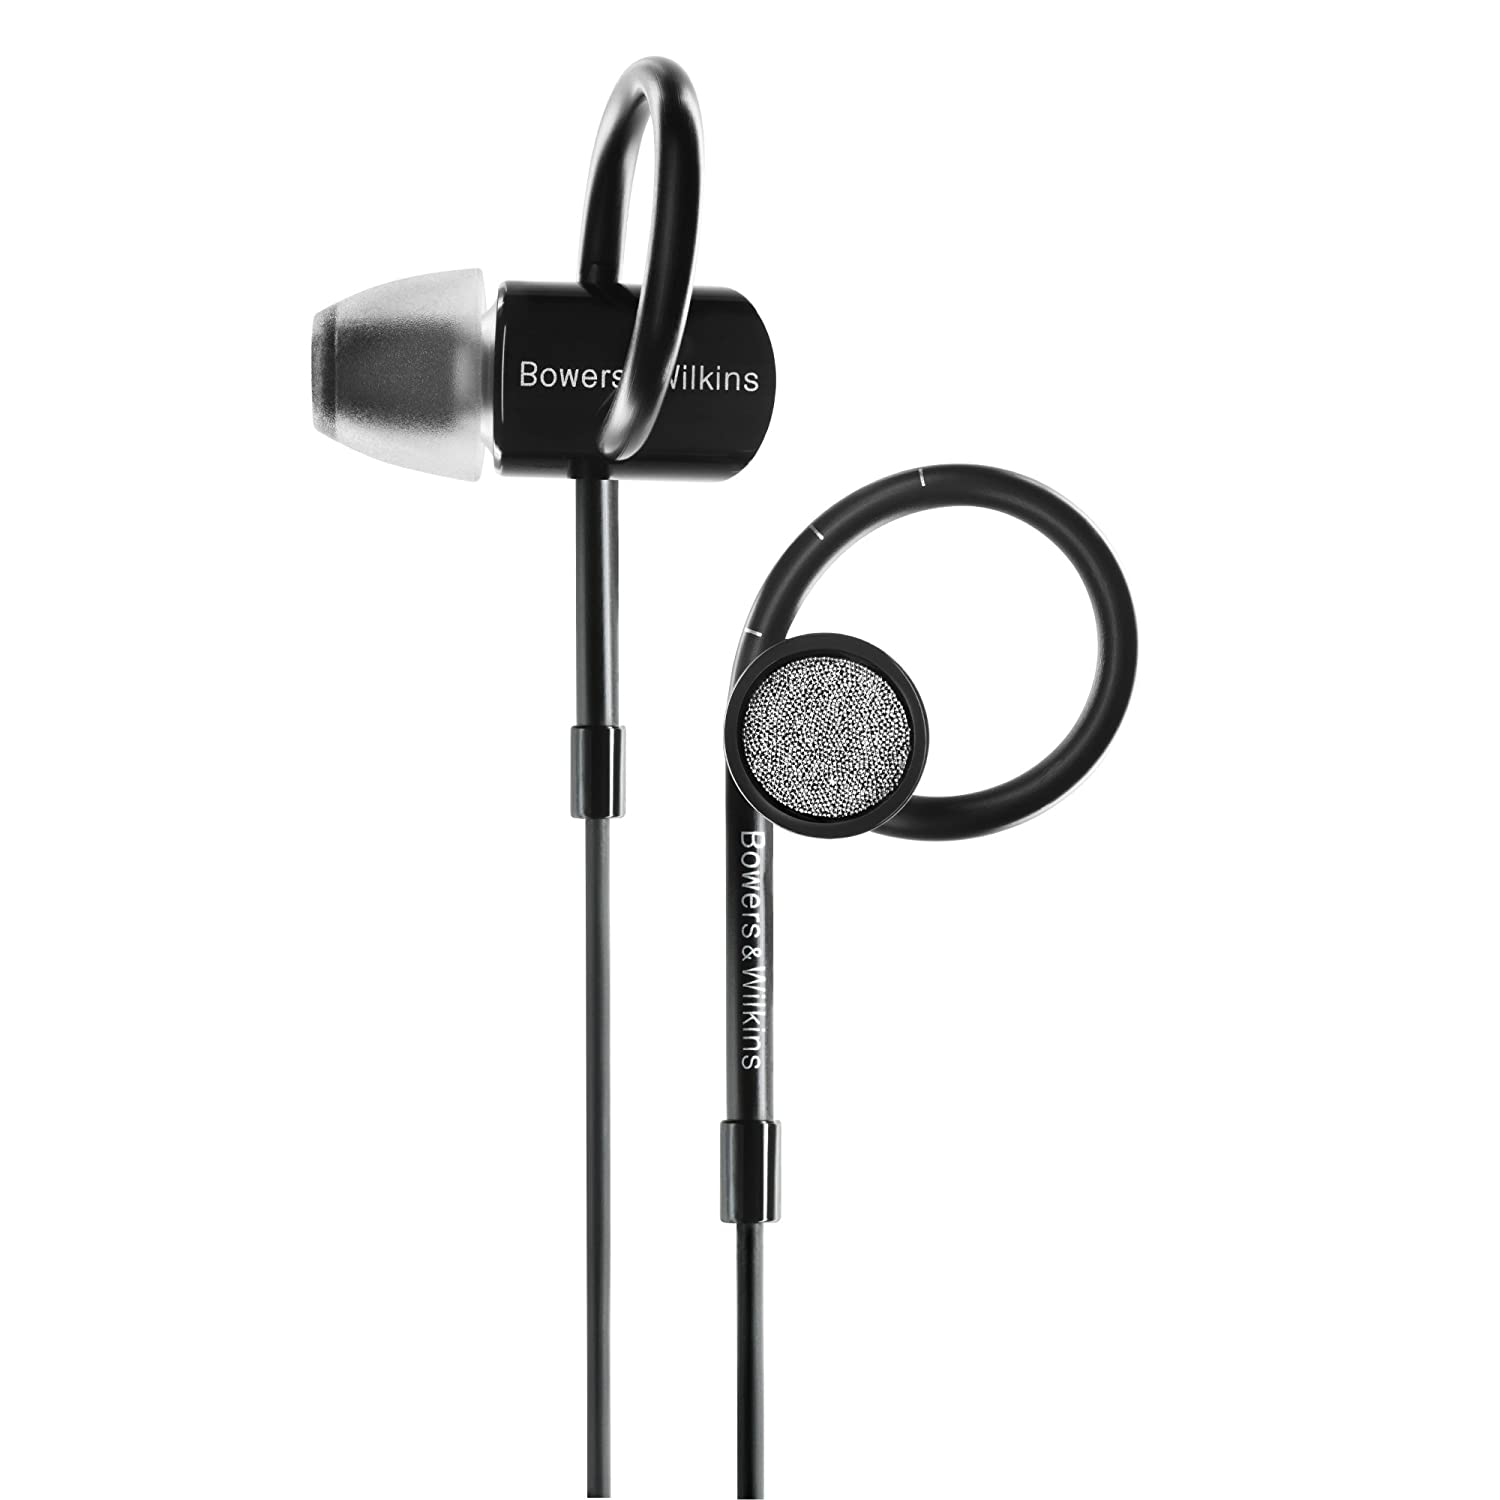 Bowers & Wilkins C5 earphone